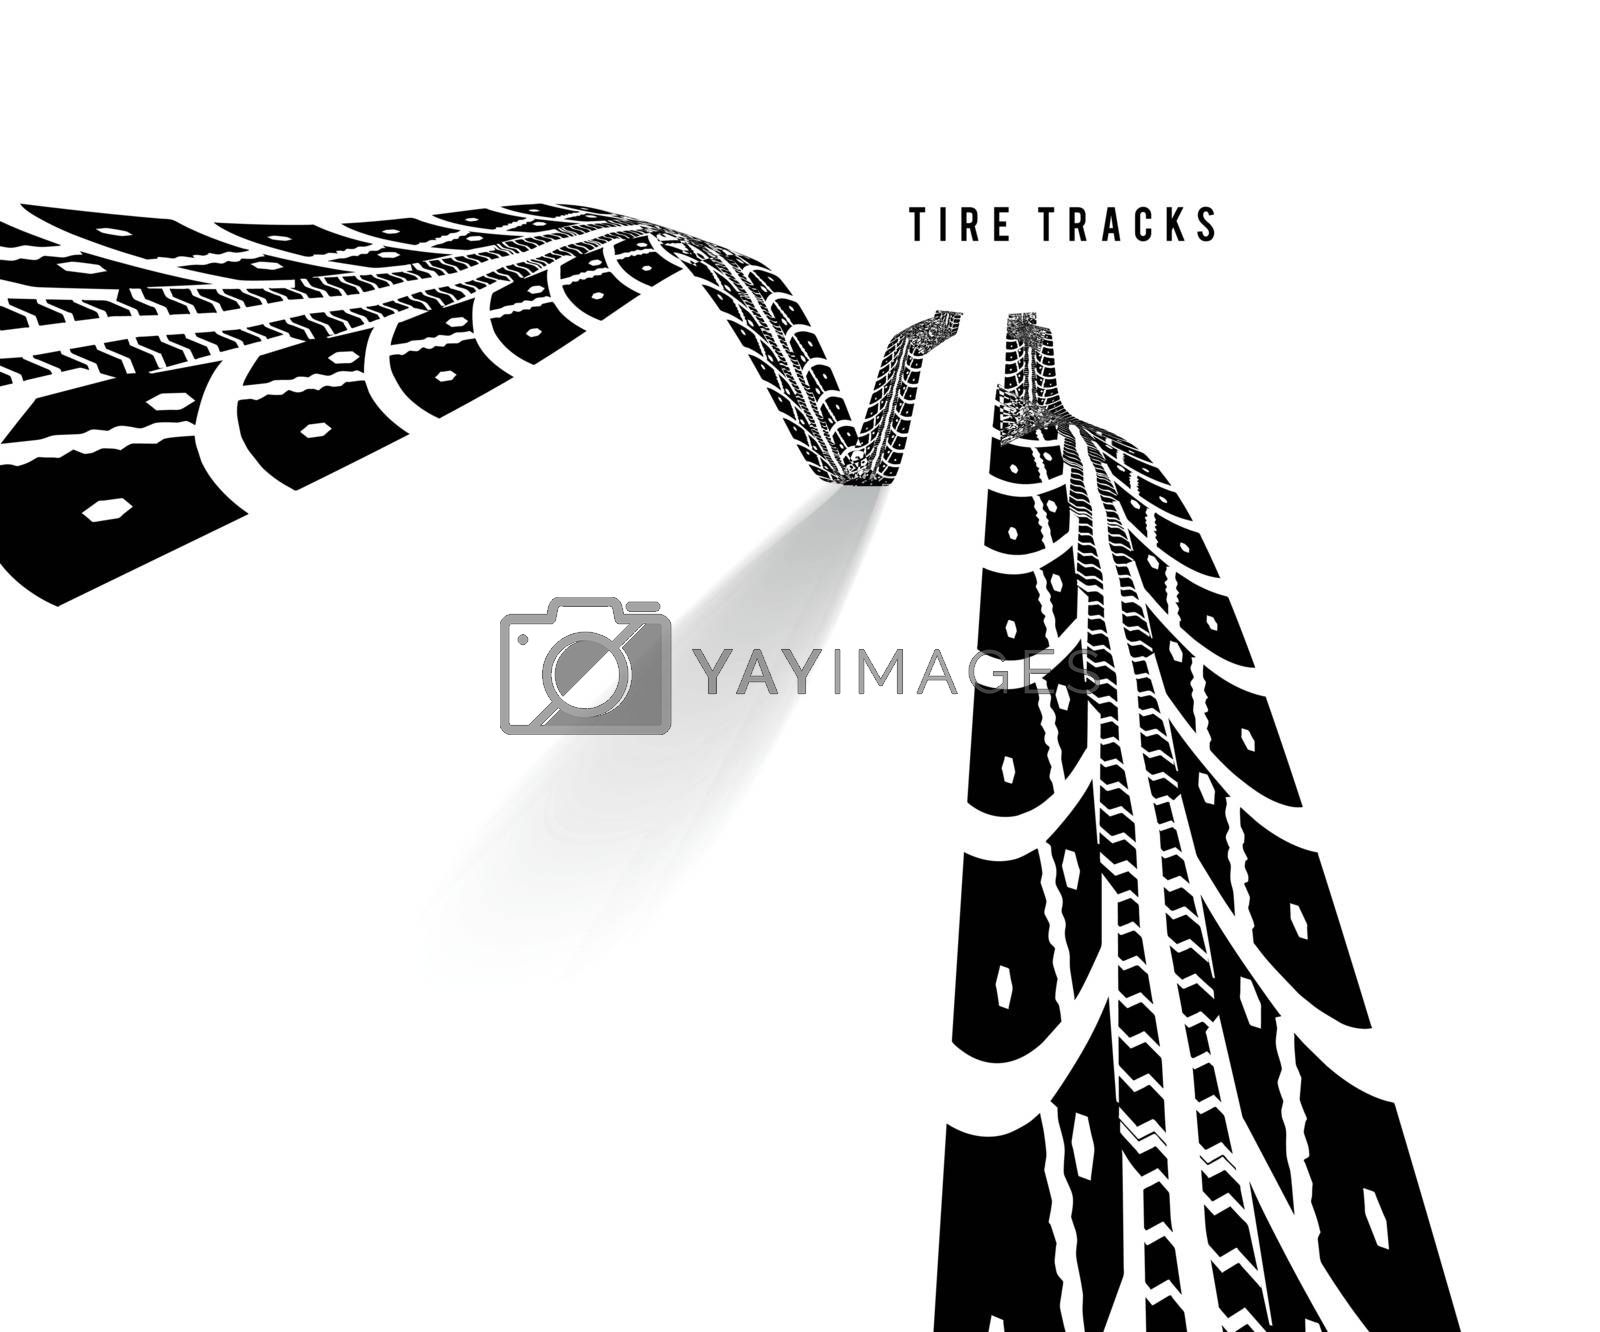 Royalty free image of Tire tracks vector illustration by sermax55